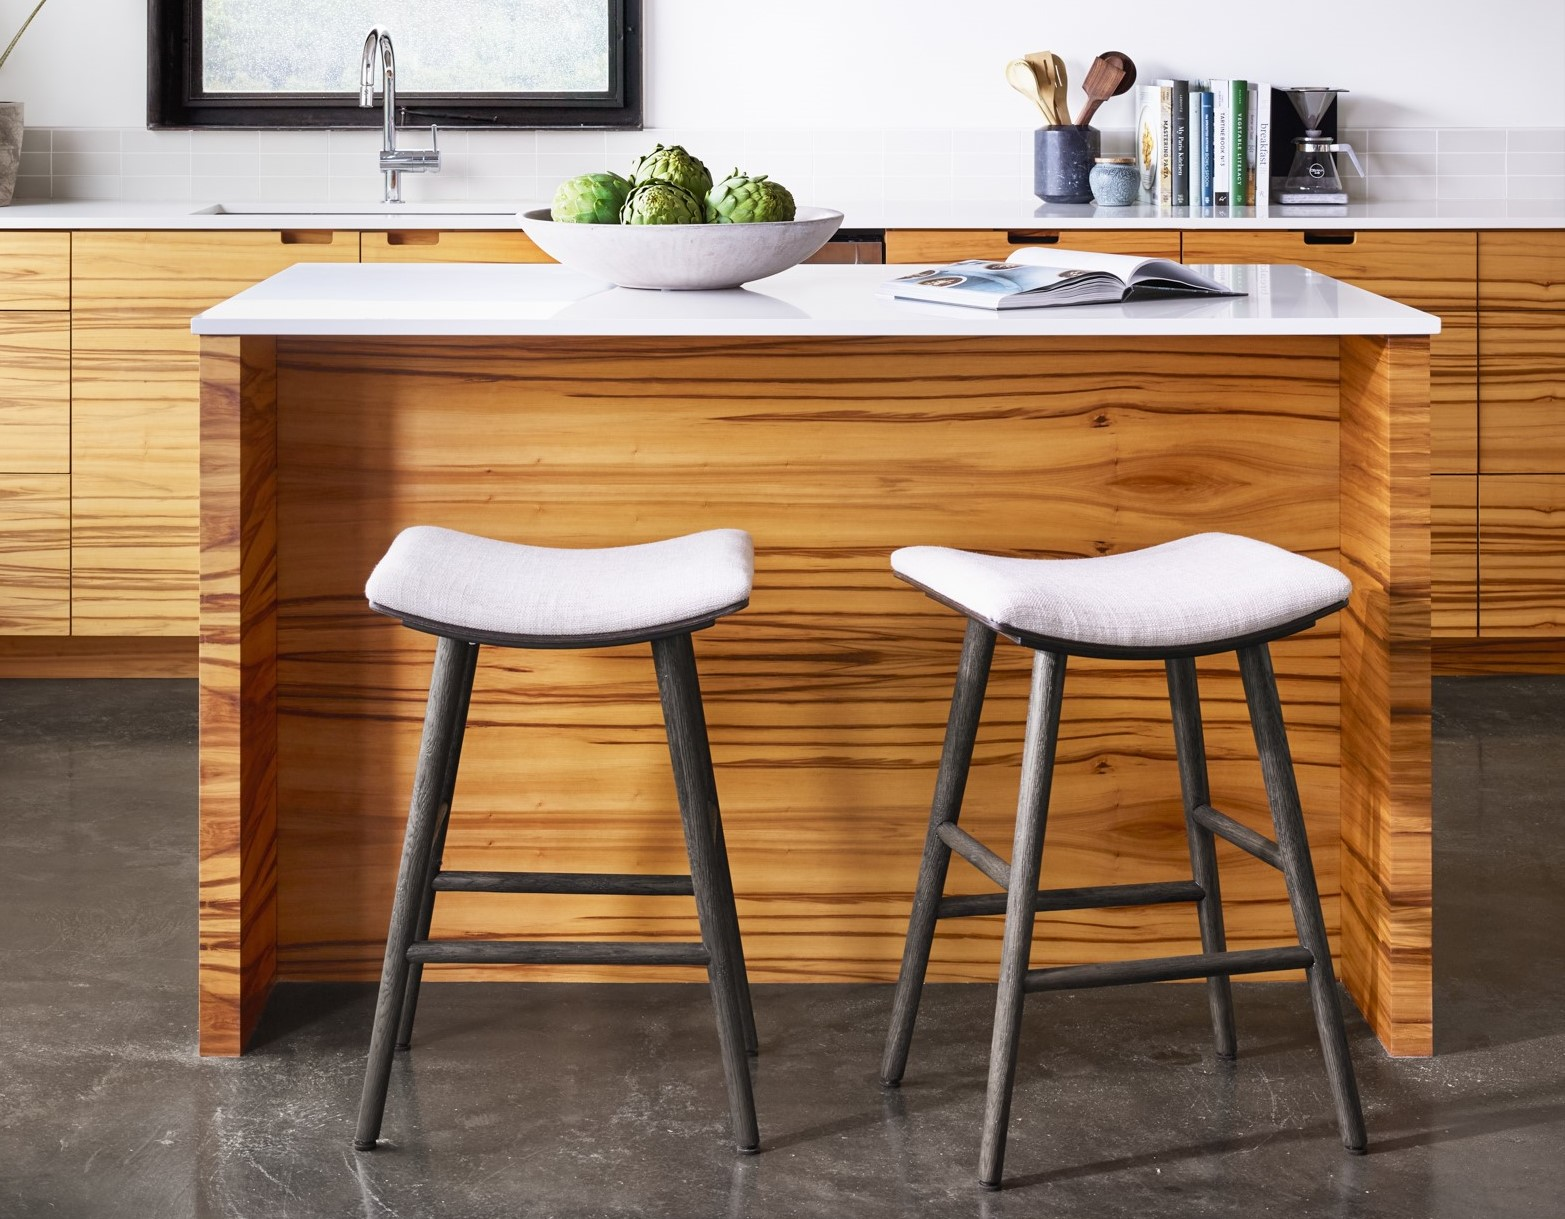 Wooden Kitchen Counter Stools A Guide To Buy Counter And Bar Stools Zin Home